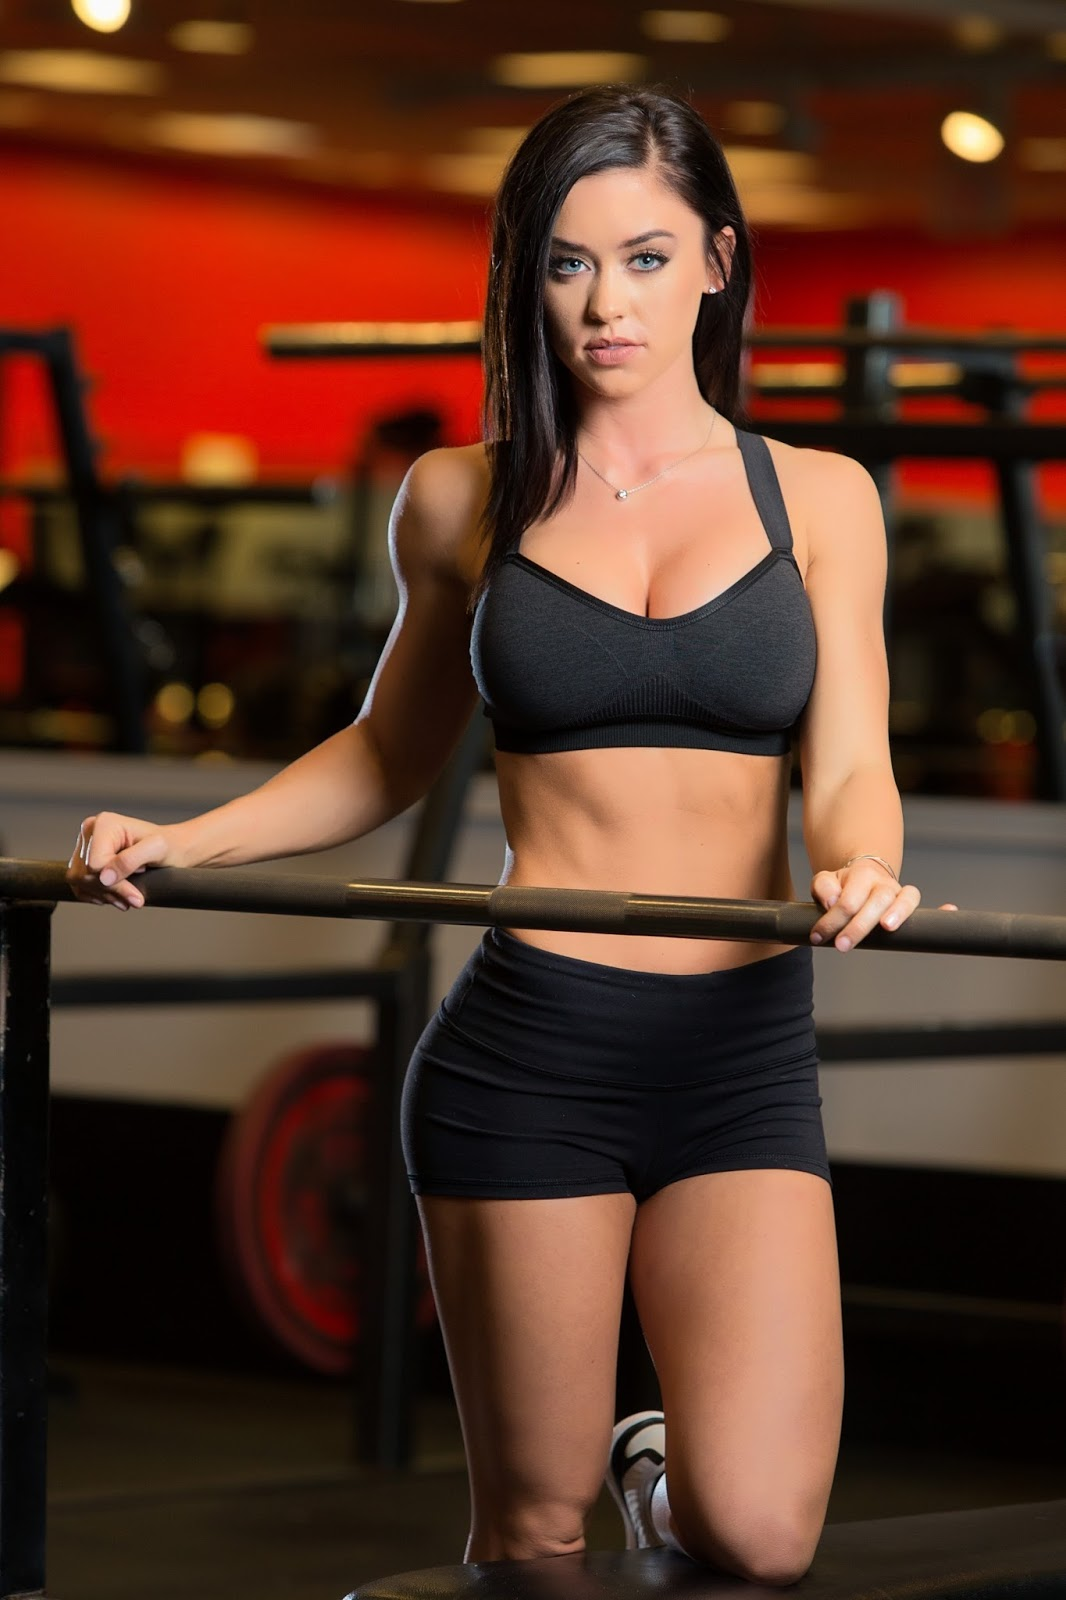 Wives And Girlfriends Sport Beauties Fitness Girl Katy